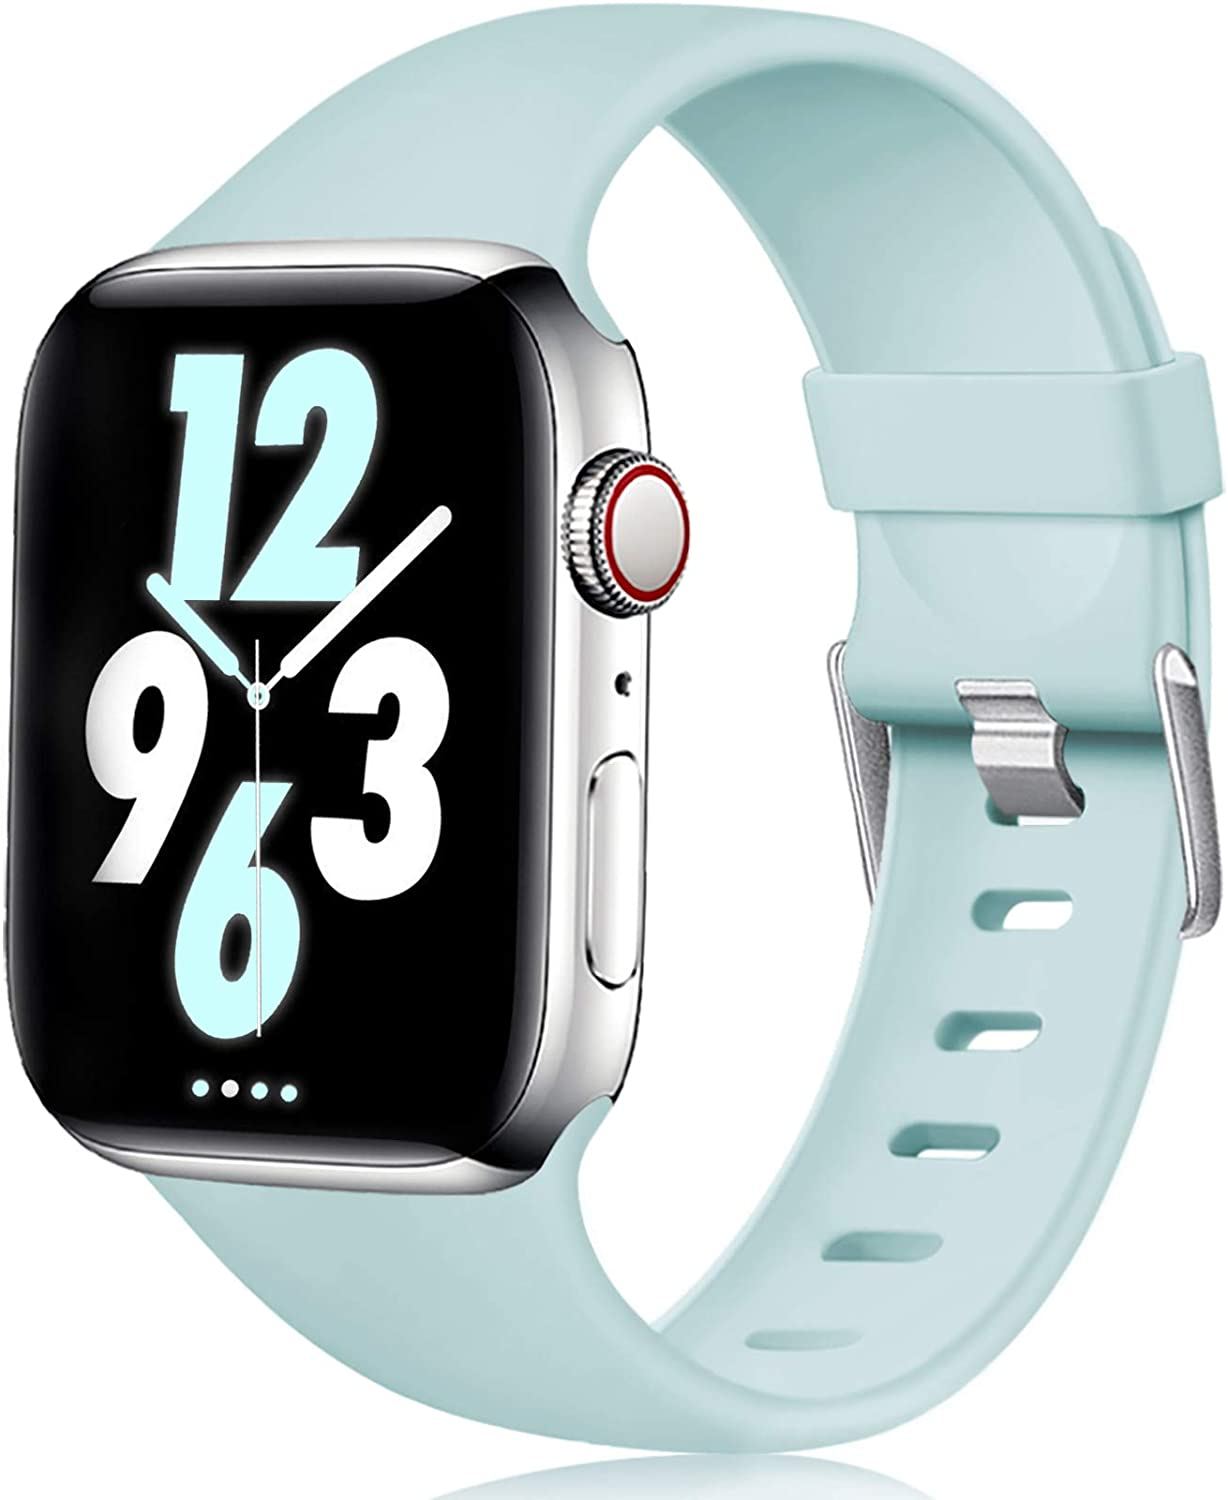 Laffav Compatible with Apple Watch Band 40mm 38mm 44mm 42mm for Women/Men, Soft Sport Bands Replacement Strap Accessory for iWatch Apple Watch SE & Series 6 5 4 3 2 1